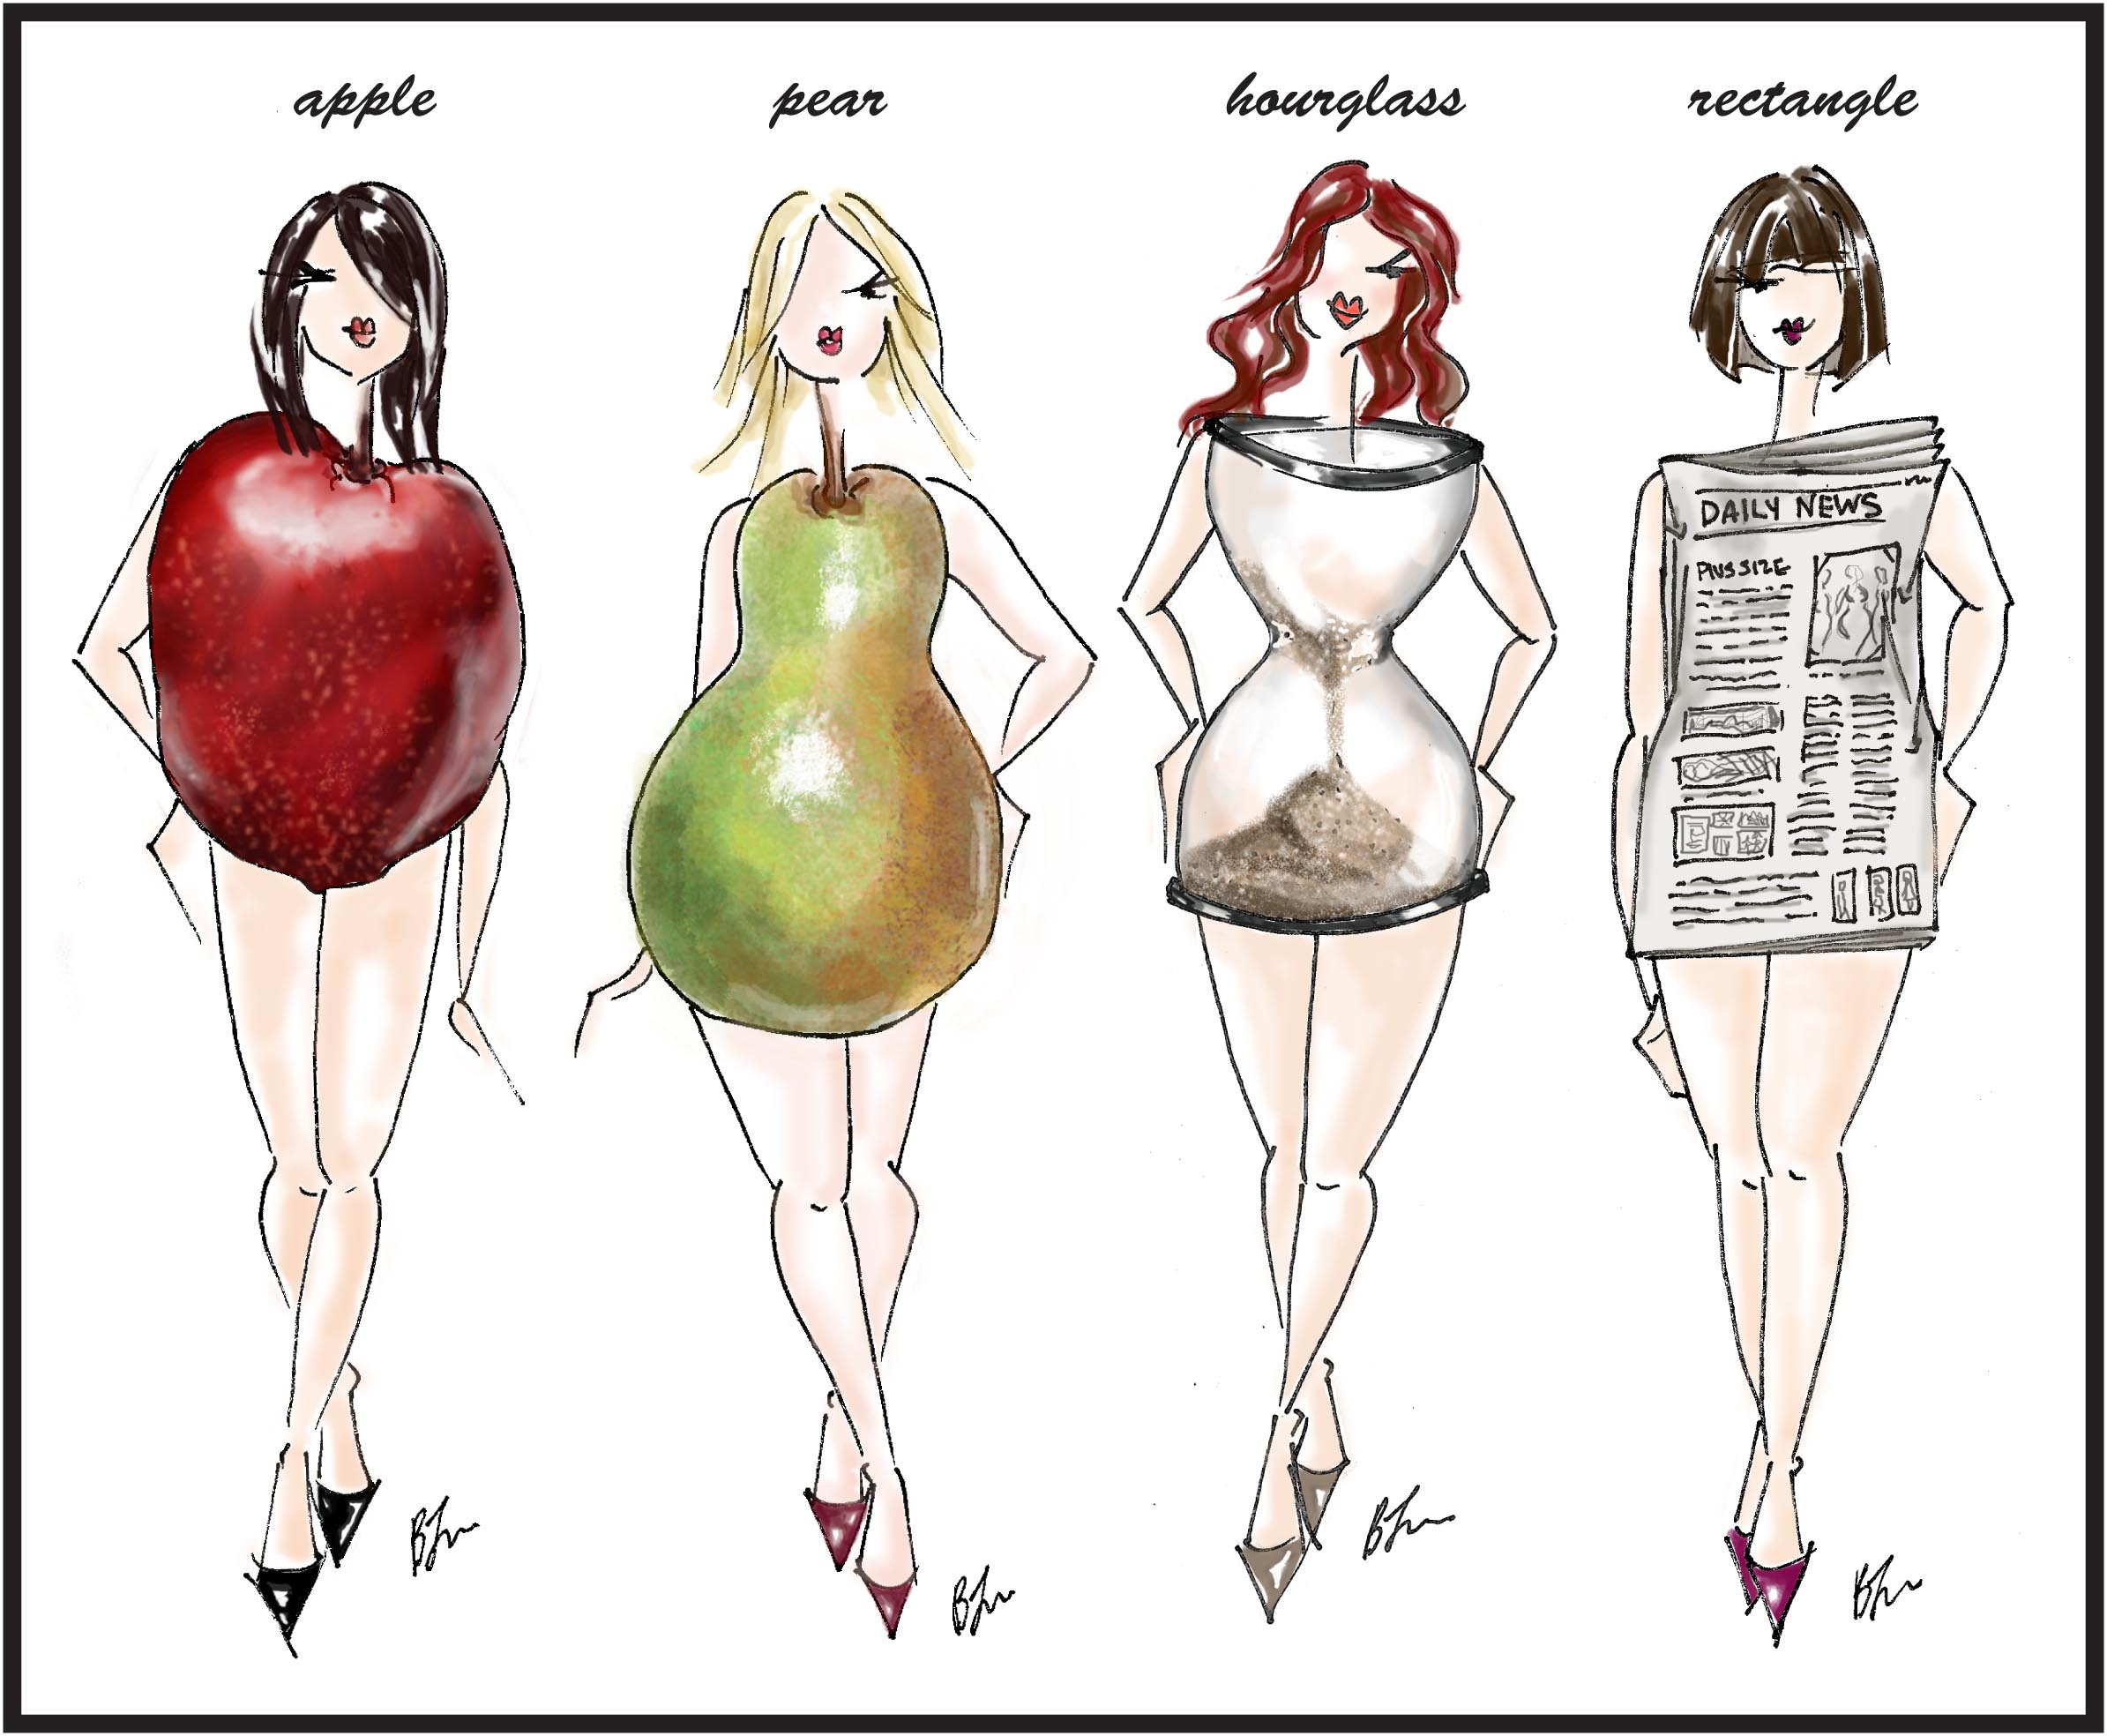 Take a look at the sketch....which one do you identify with?